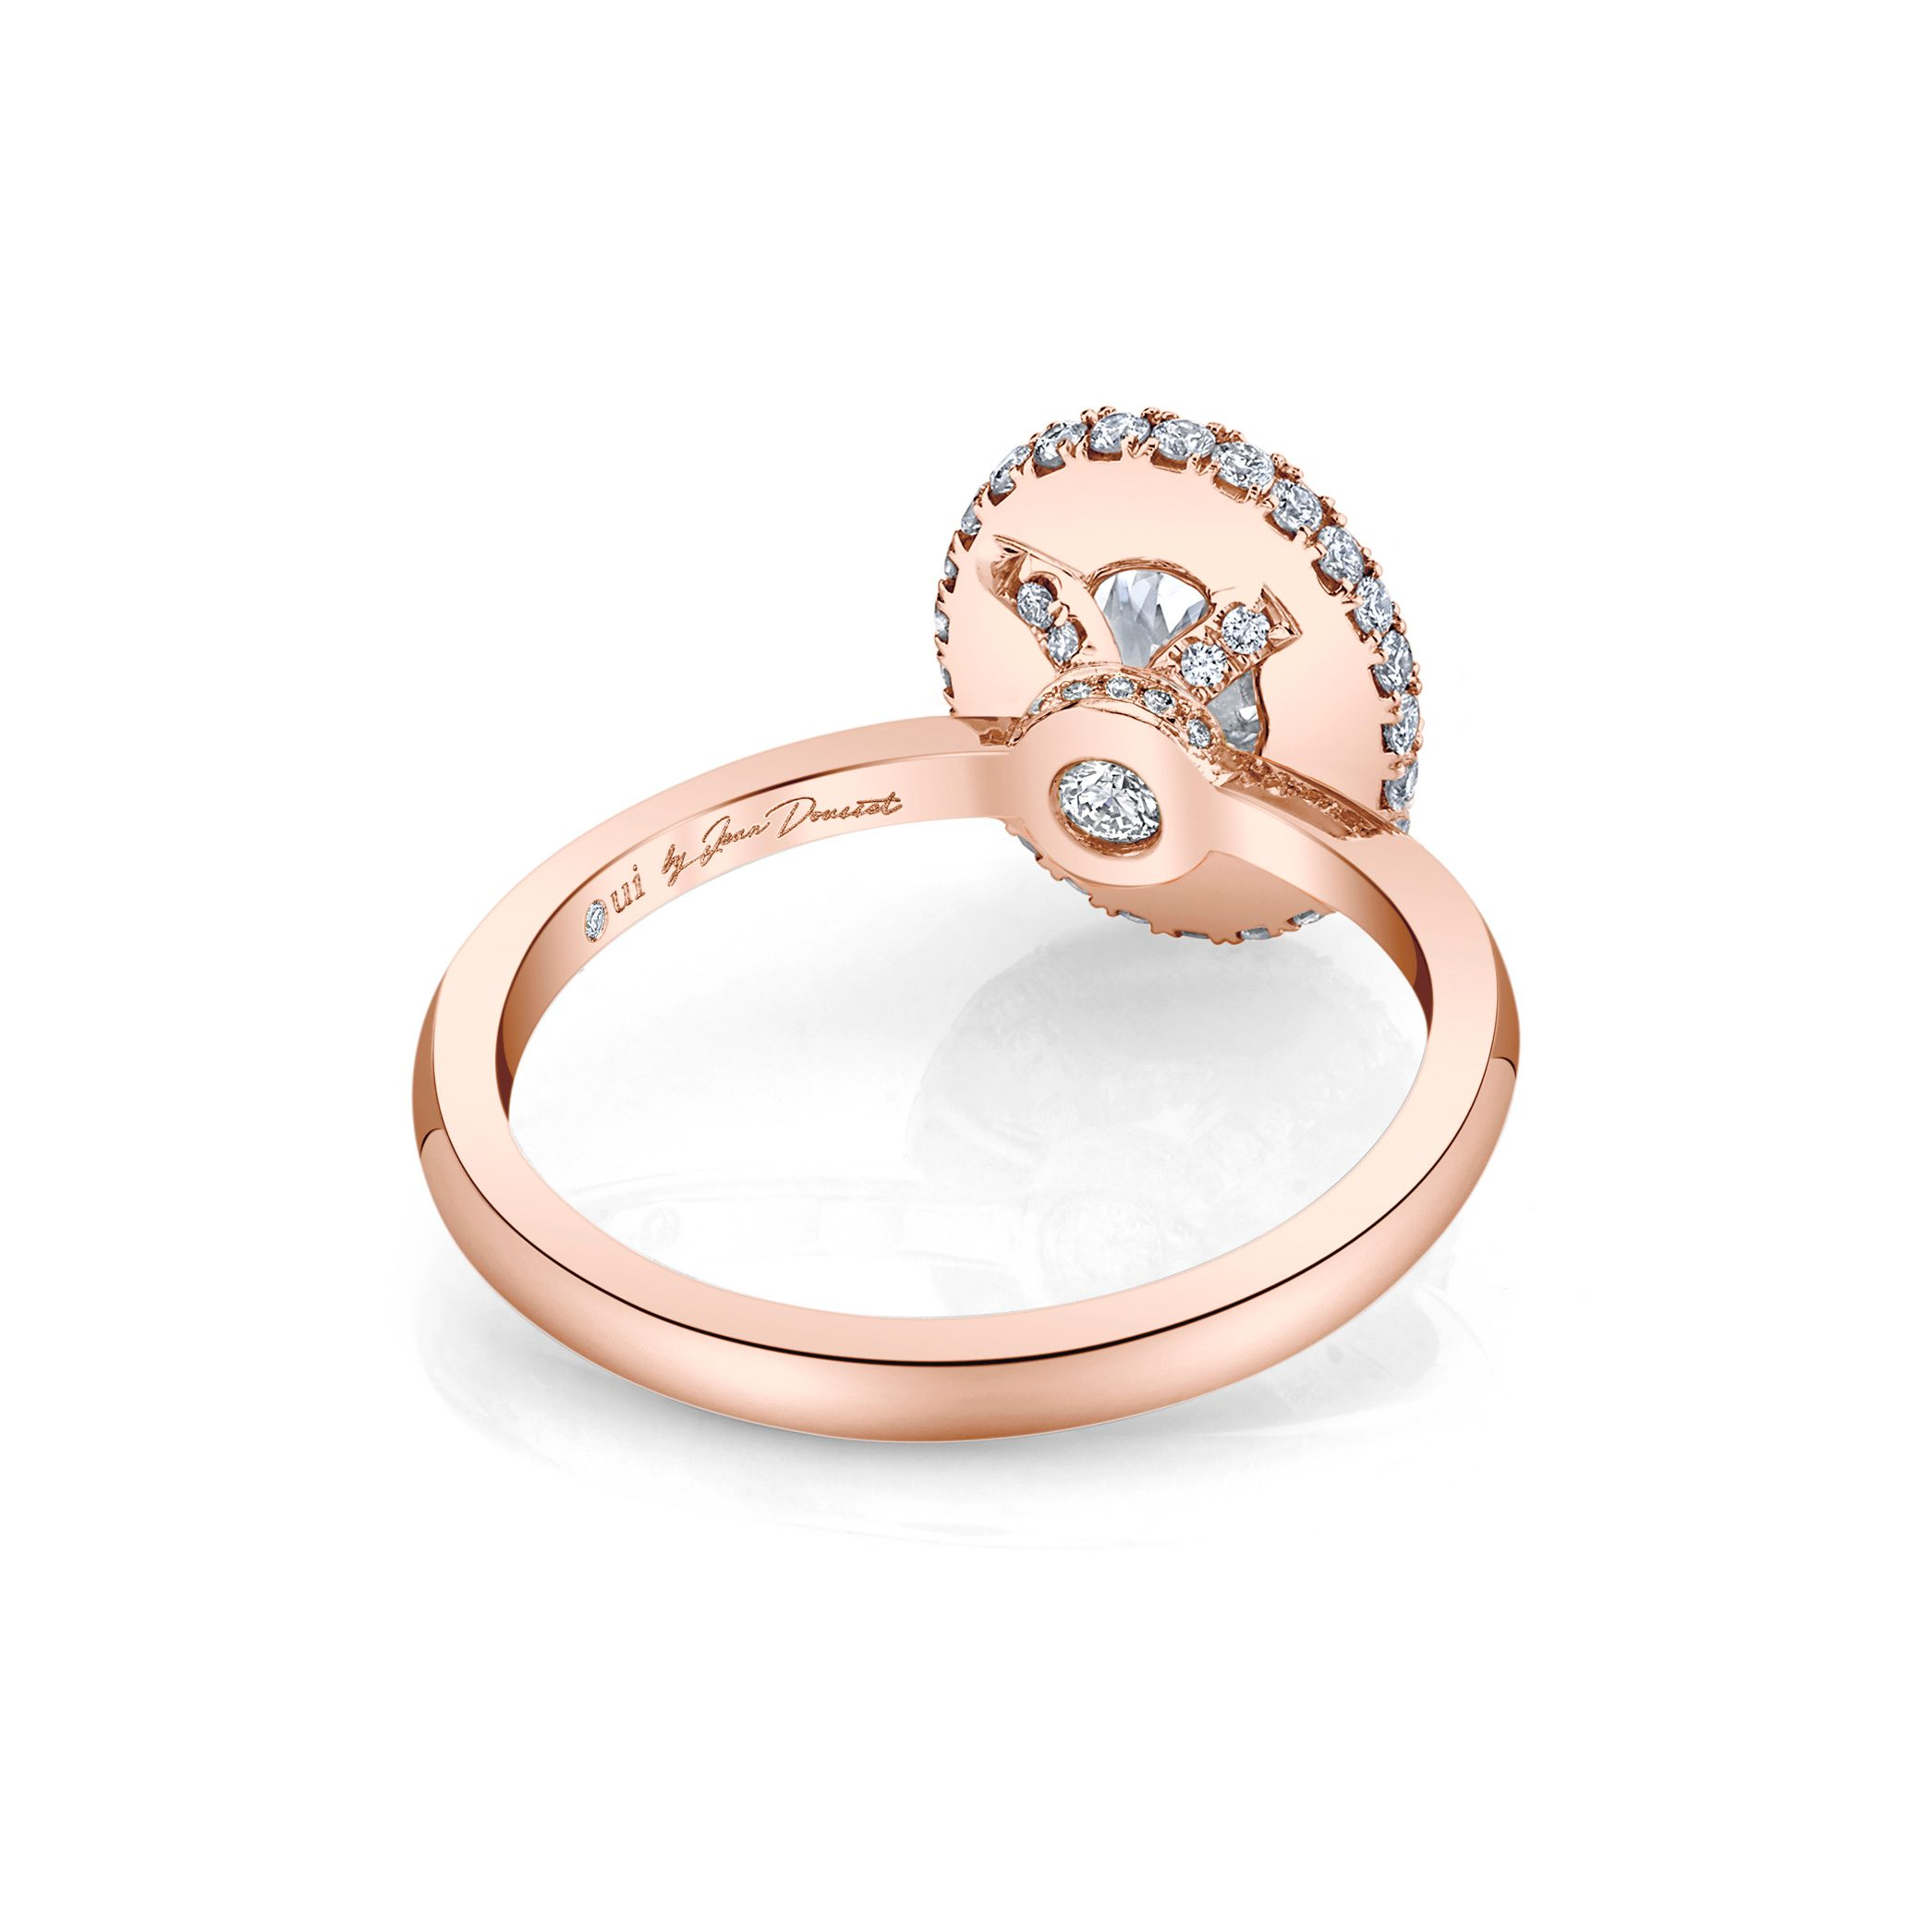 Colette Oval Seamless Halo® Engagement Ring with a solid band in 18k Rose Gold by Oui Back View by Jean Dousset